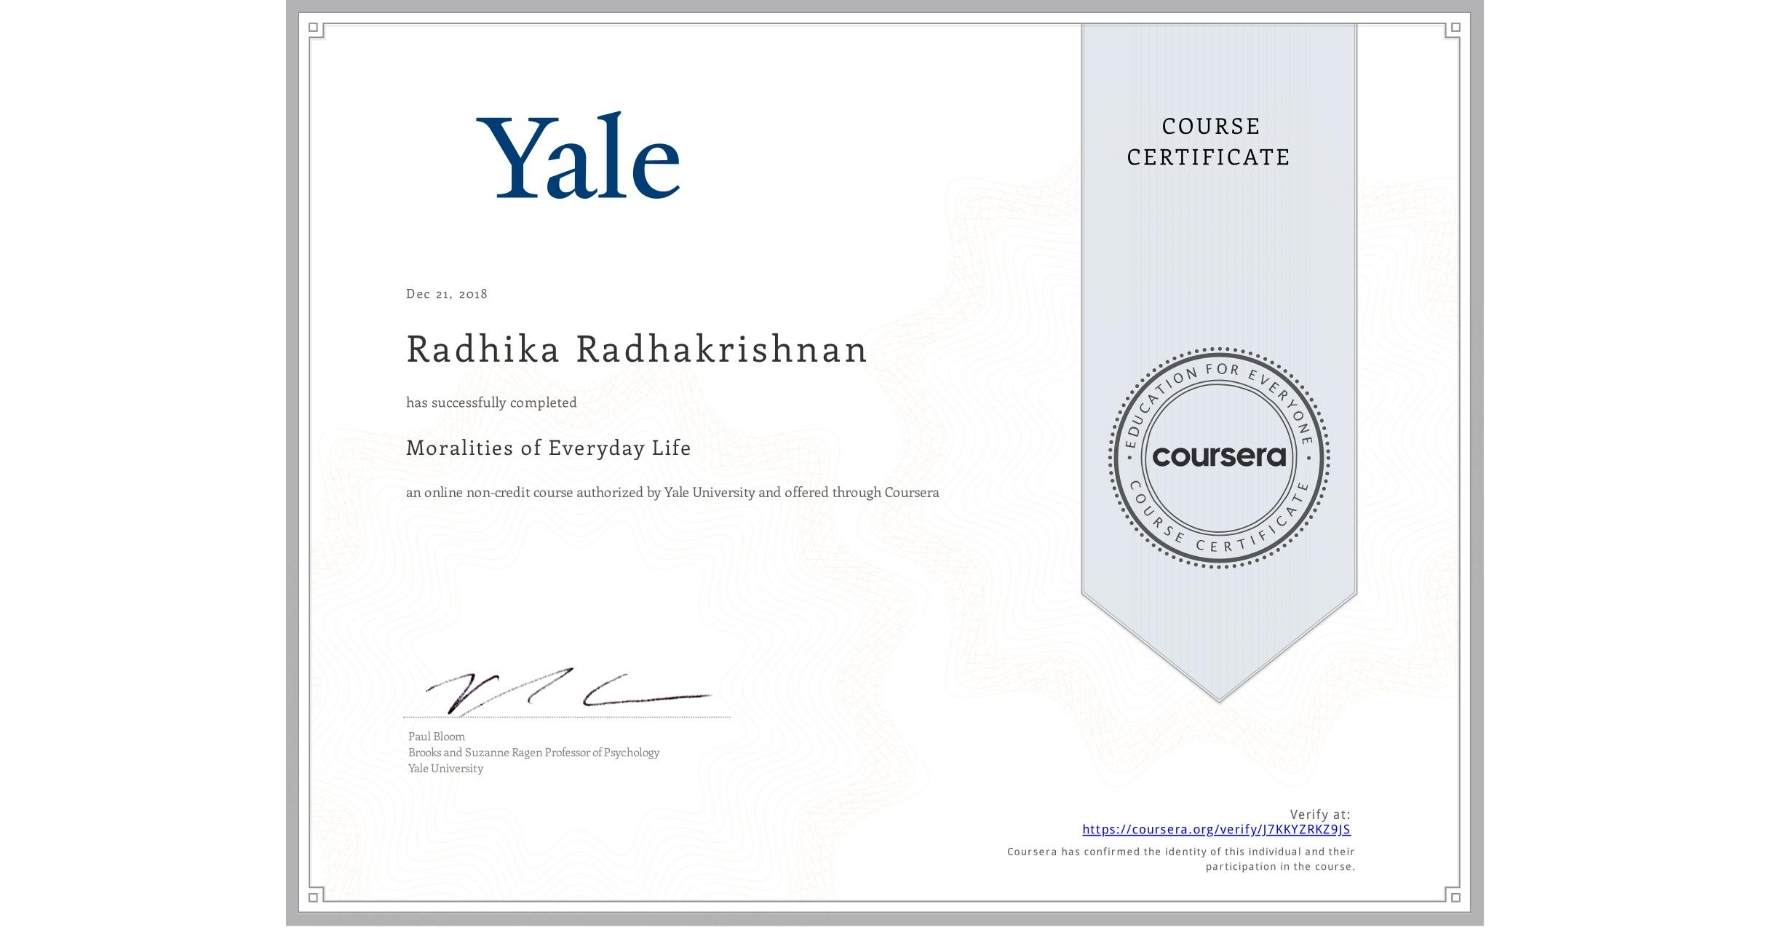 View certificate for Radhika Radhakrishnan, Moralities of Everyday Life, an online non-credit course authorized by Yale University and offered through Coursera